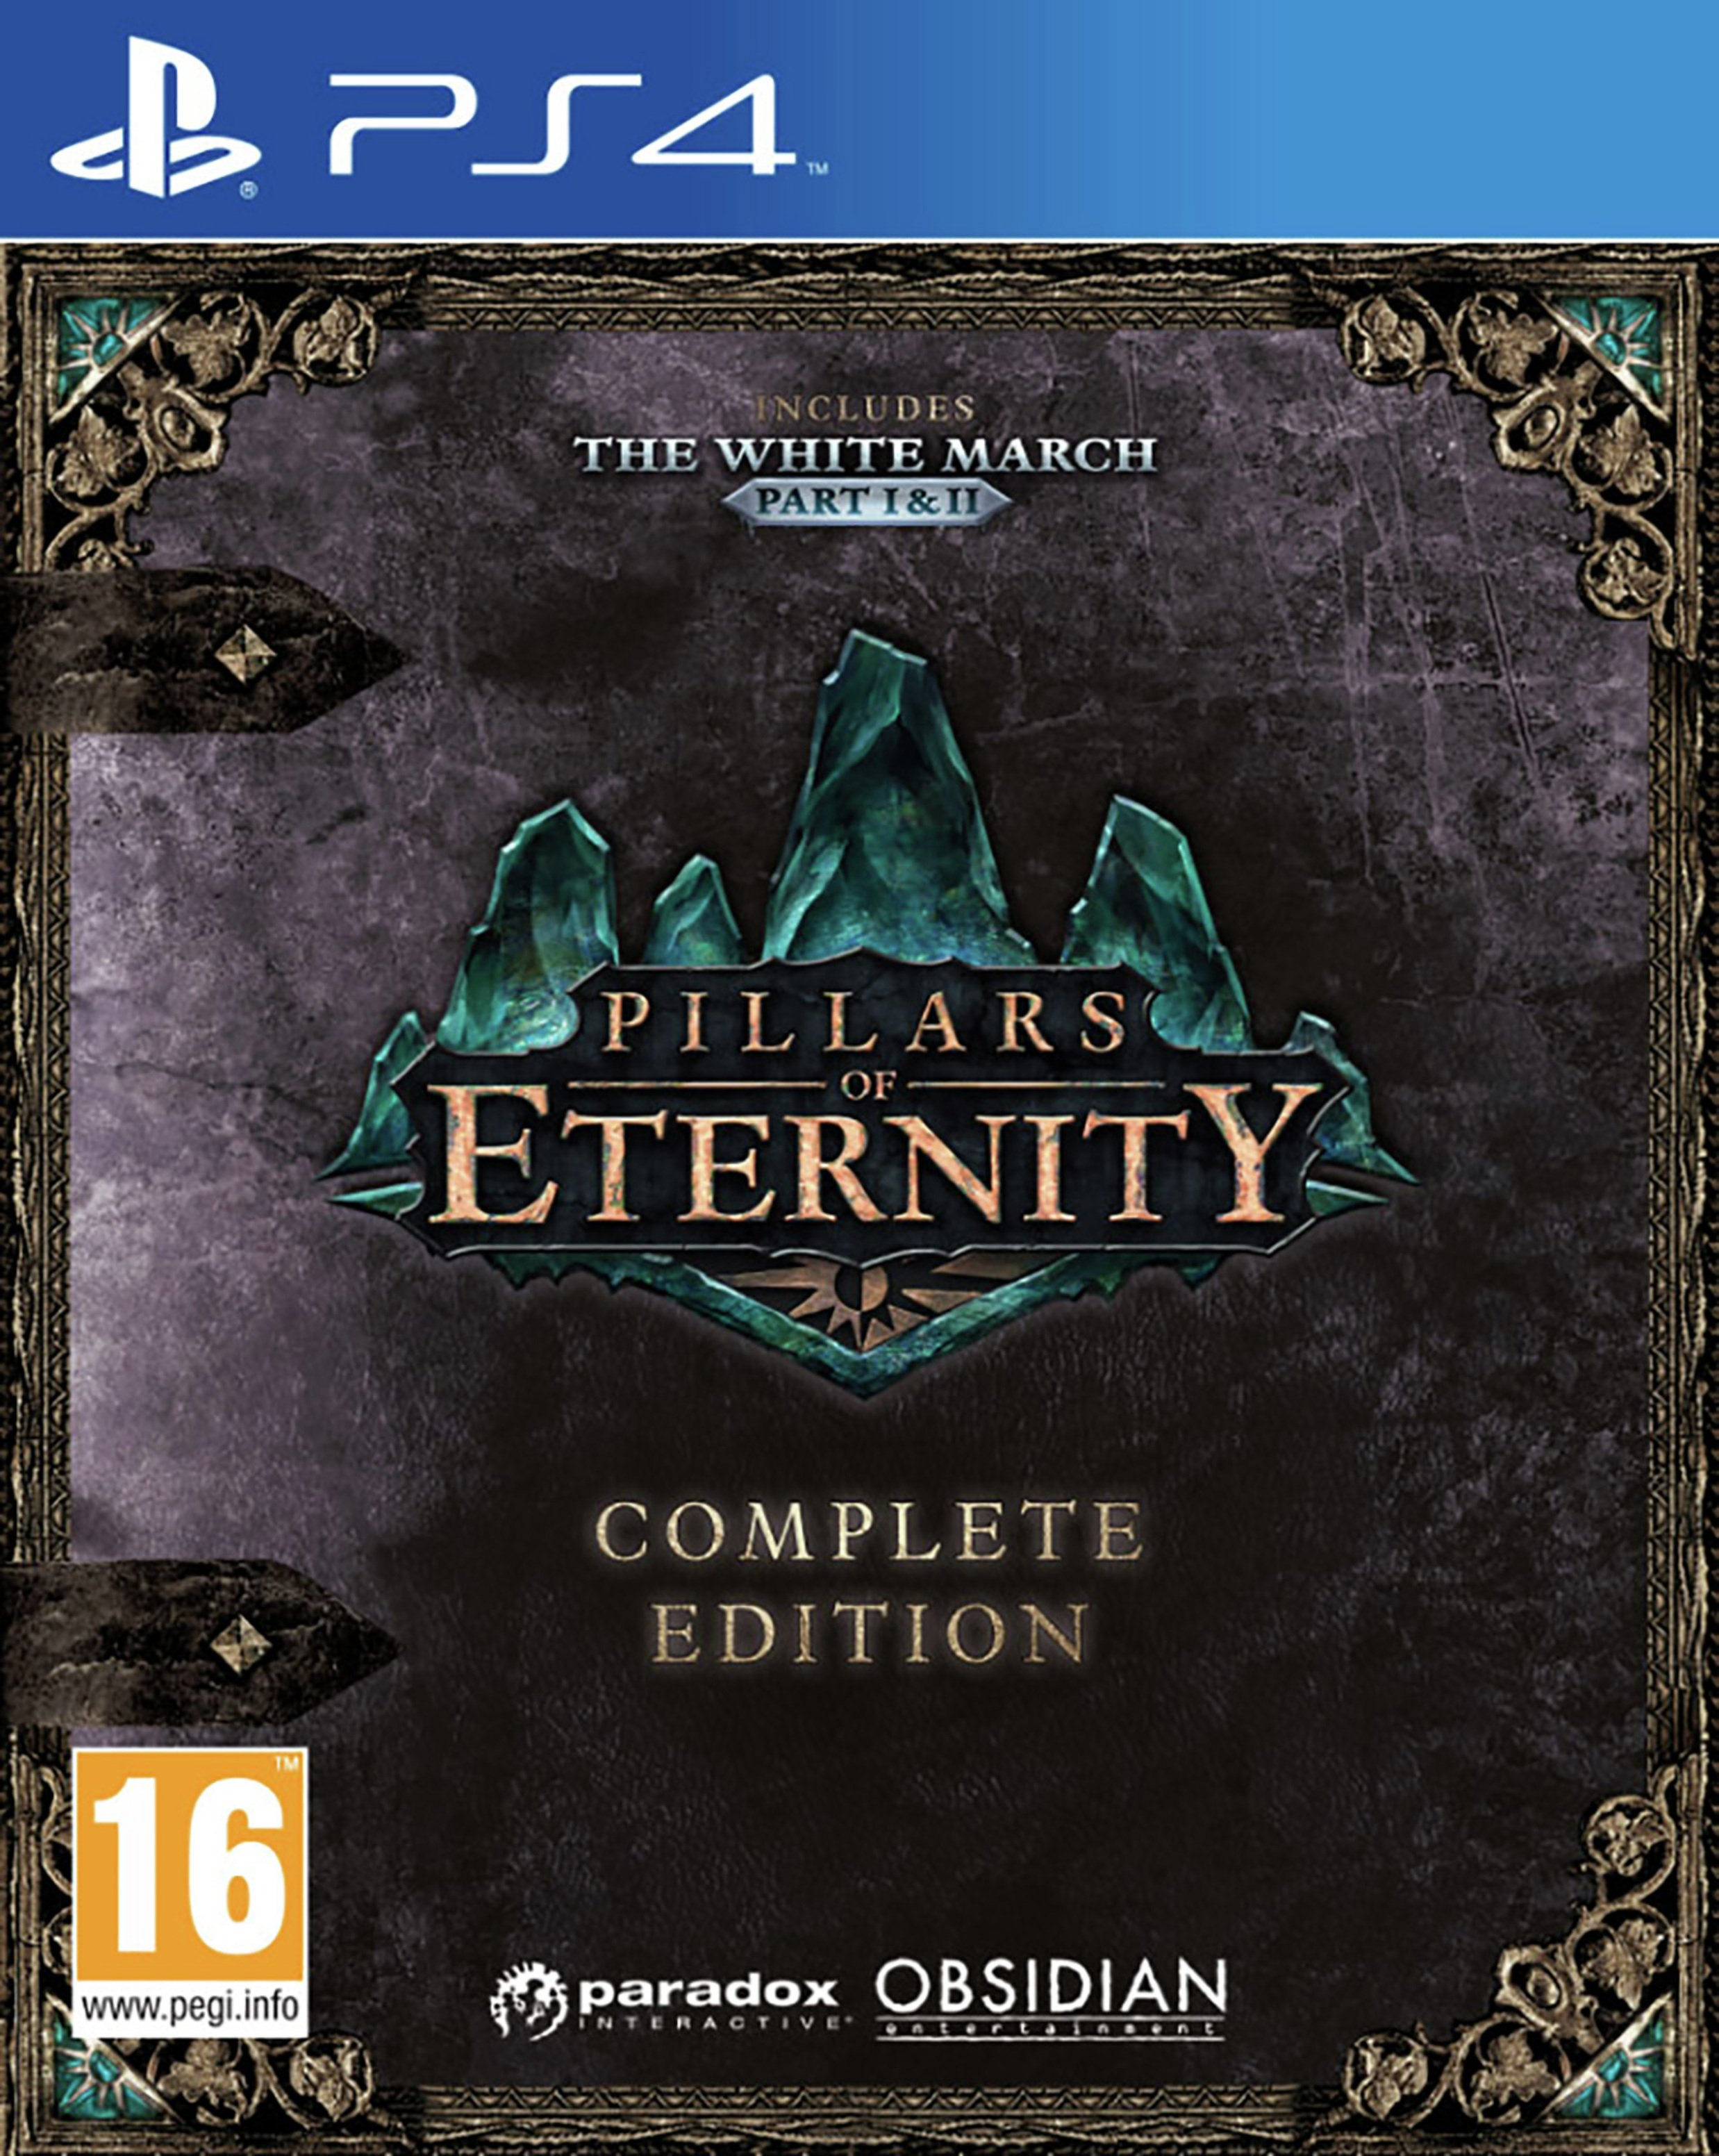 Pillars of Eternity Complete Edition PS4 Game review